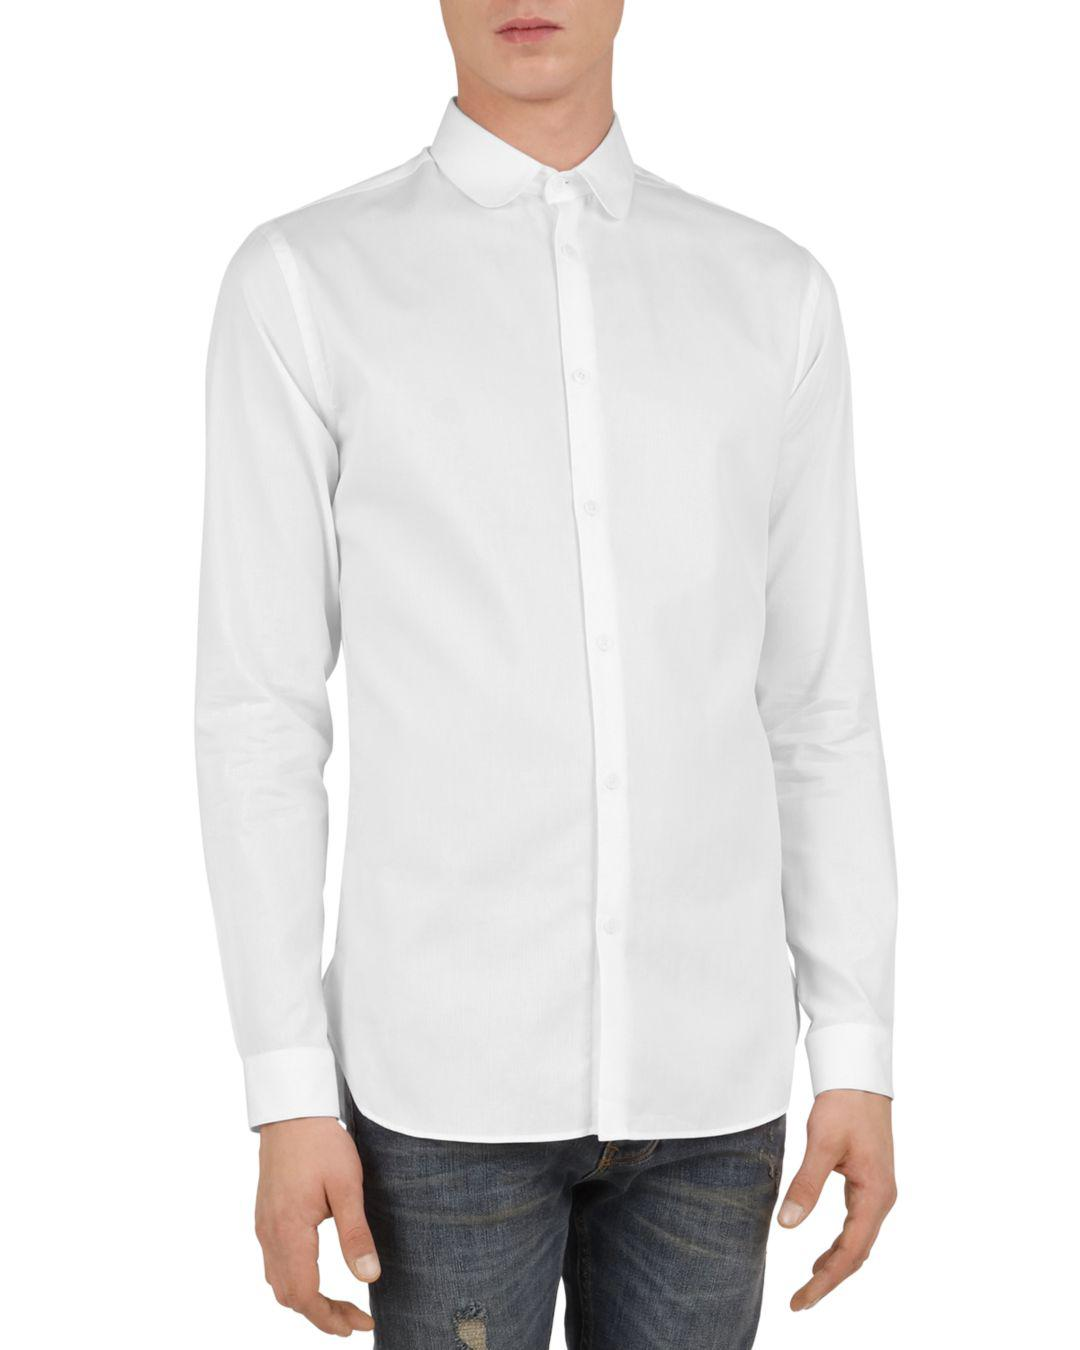 933270ca Lyst - The Kooples Liz Slim Fit Button-down Shirt in White for Men